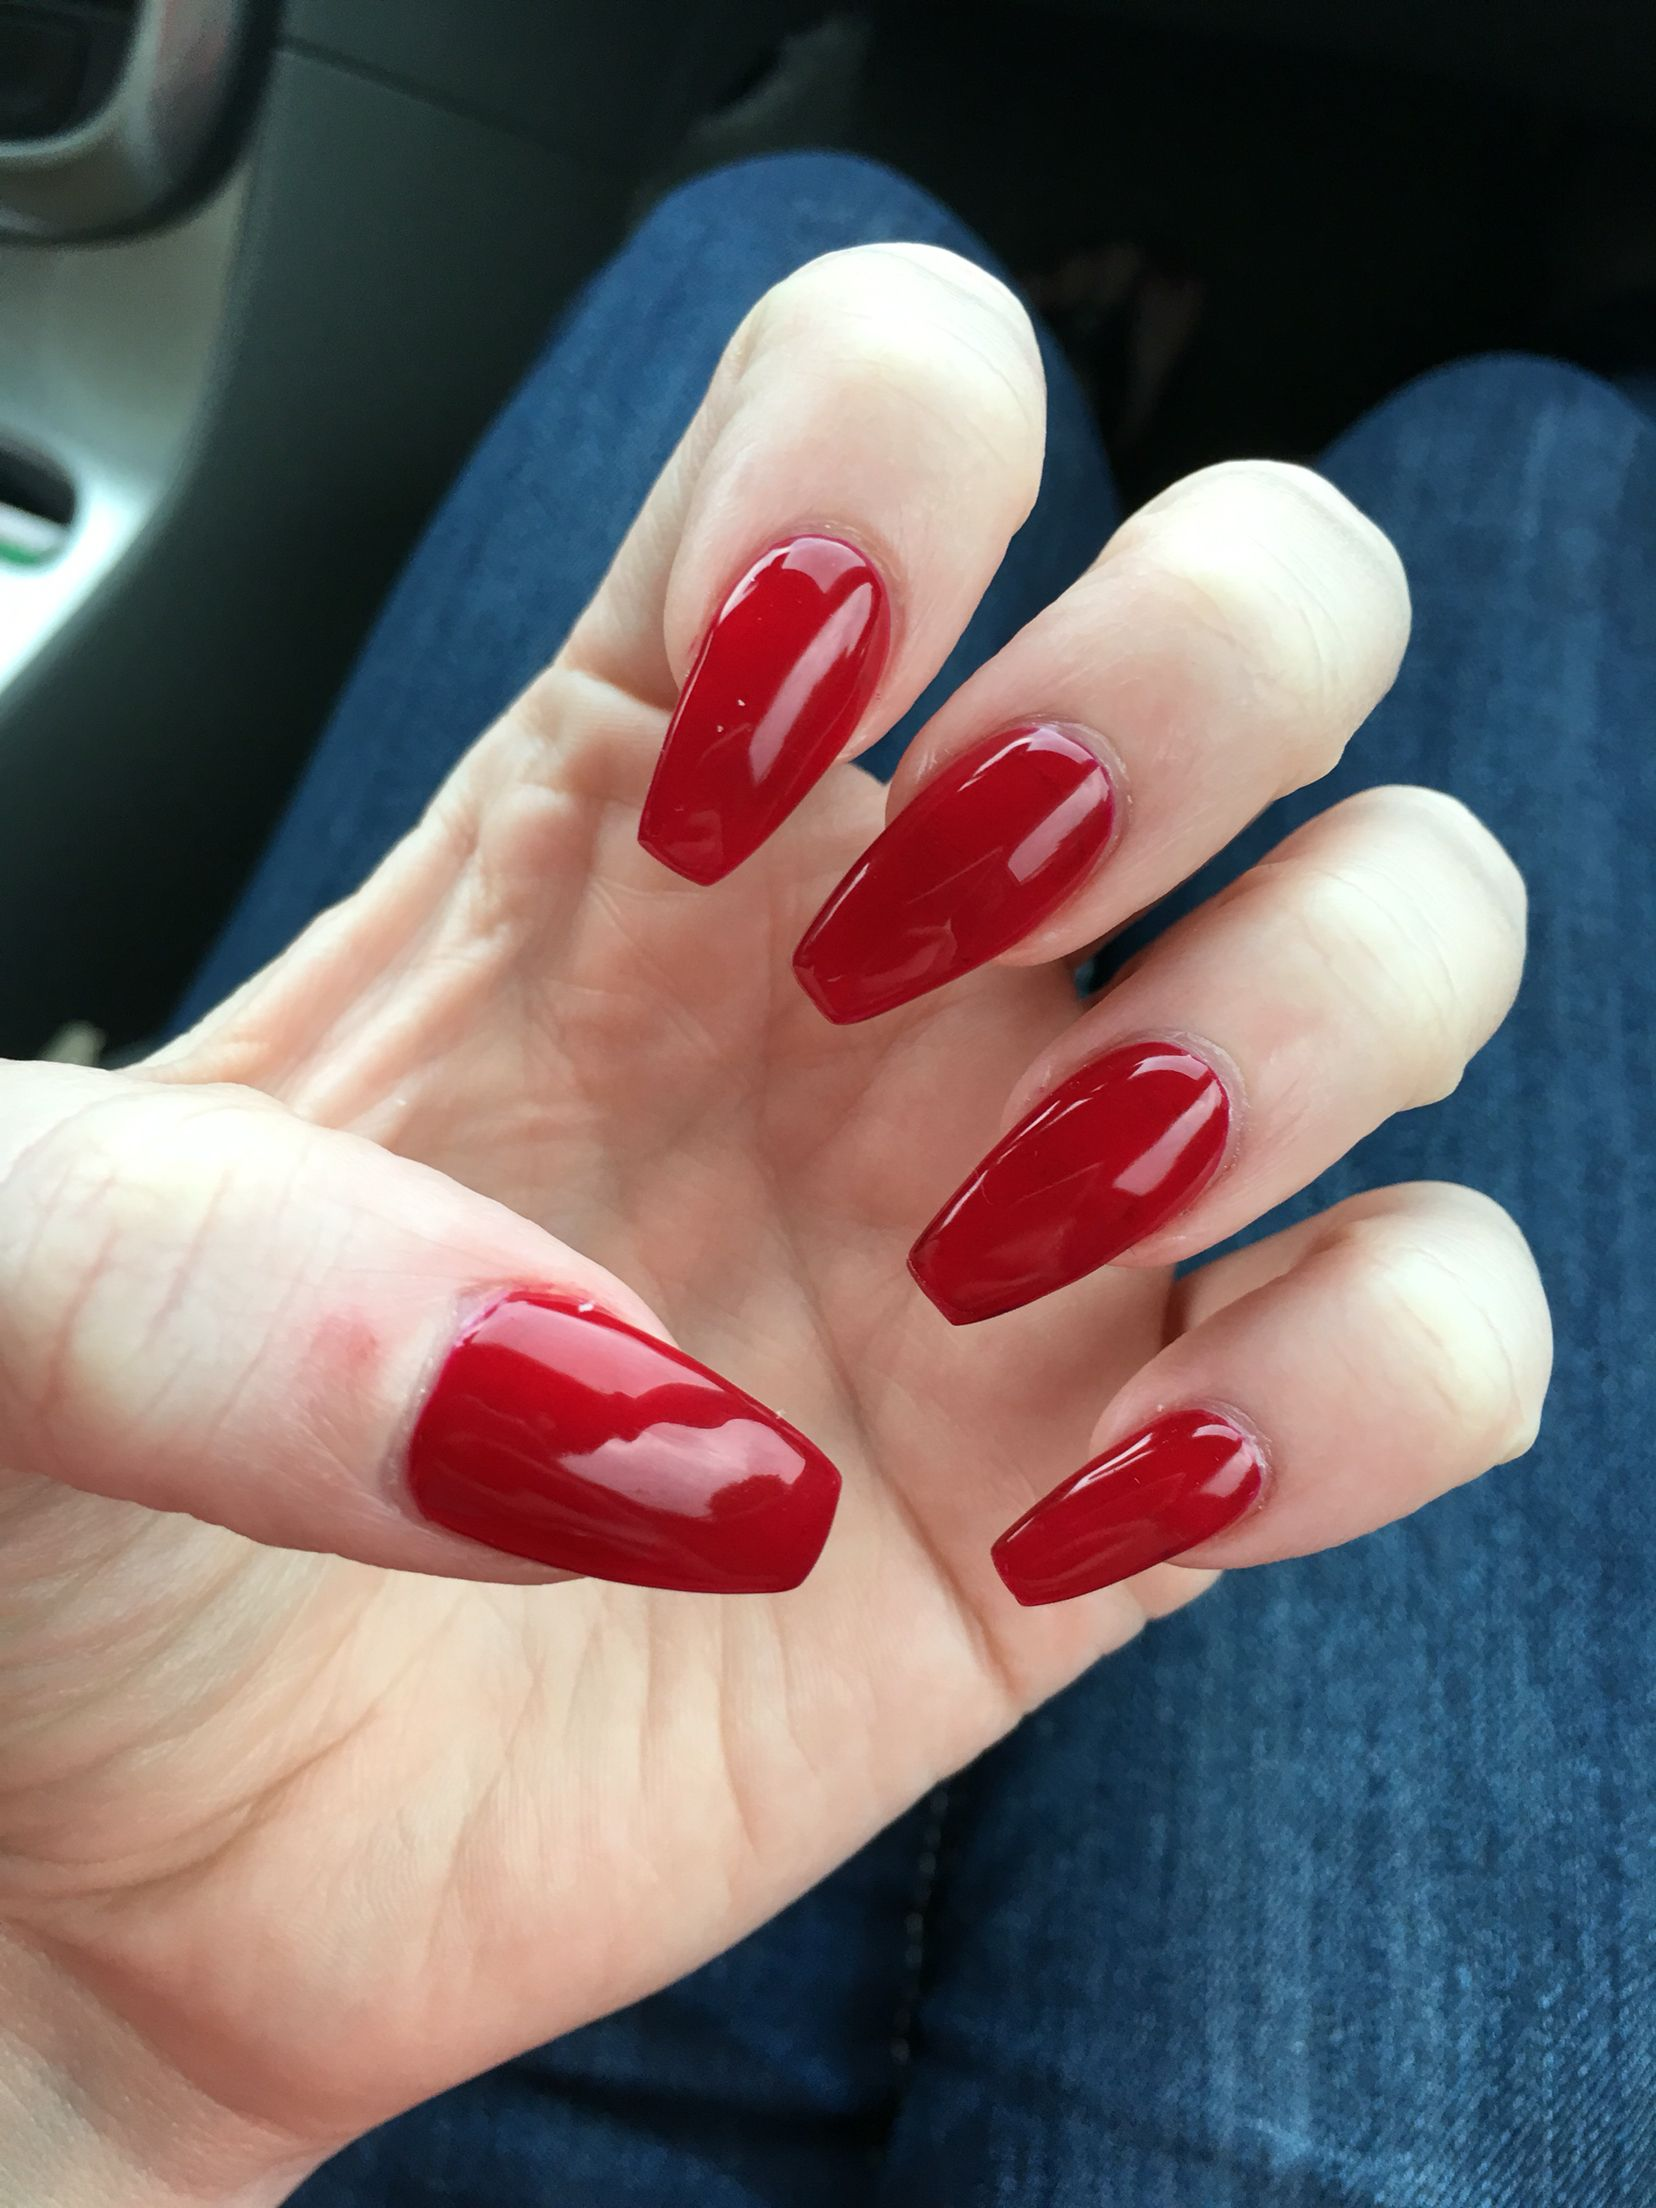 Red Coffin Nails Nails Gel Nails Coffin Shaped Red Nails Gel Nails Glitter Gel Nails